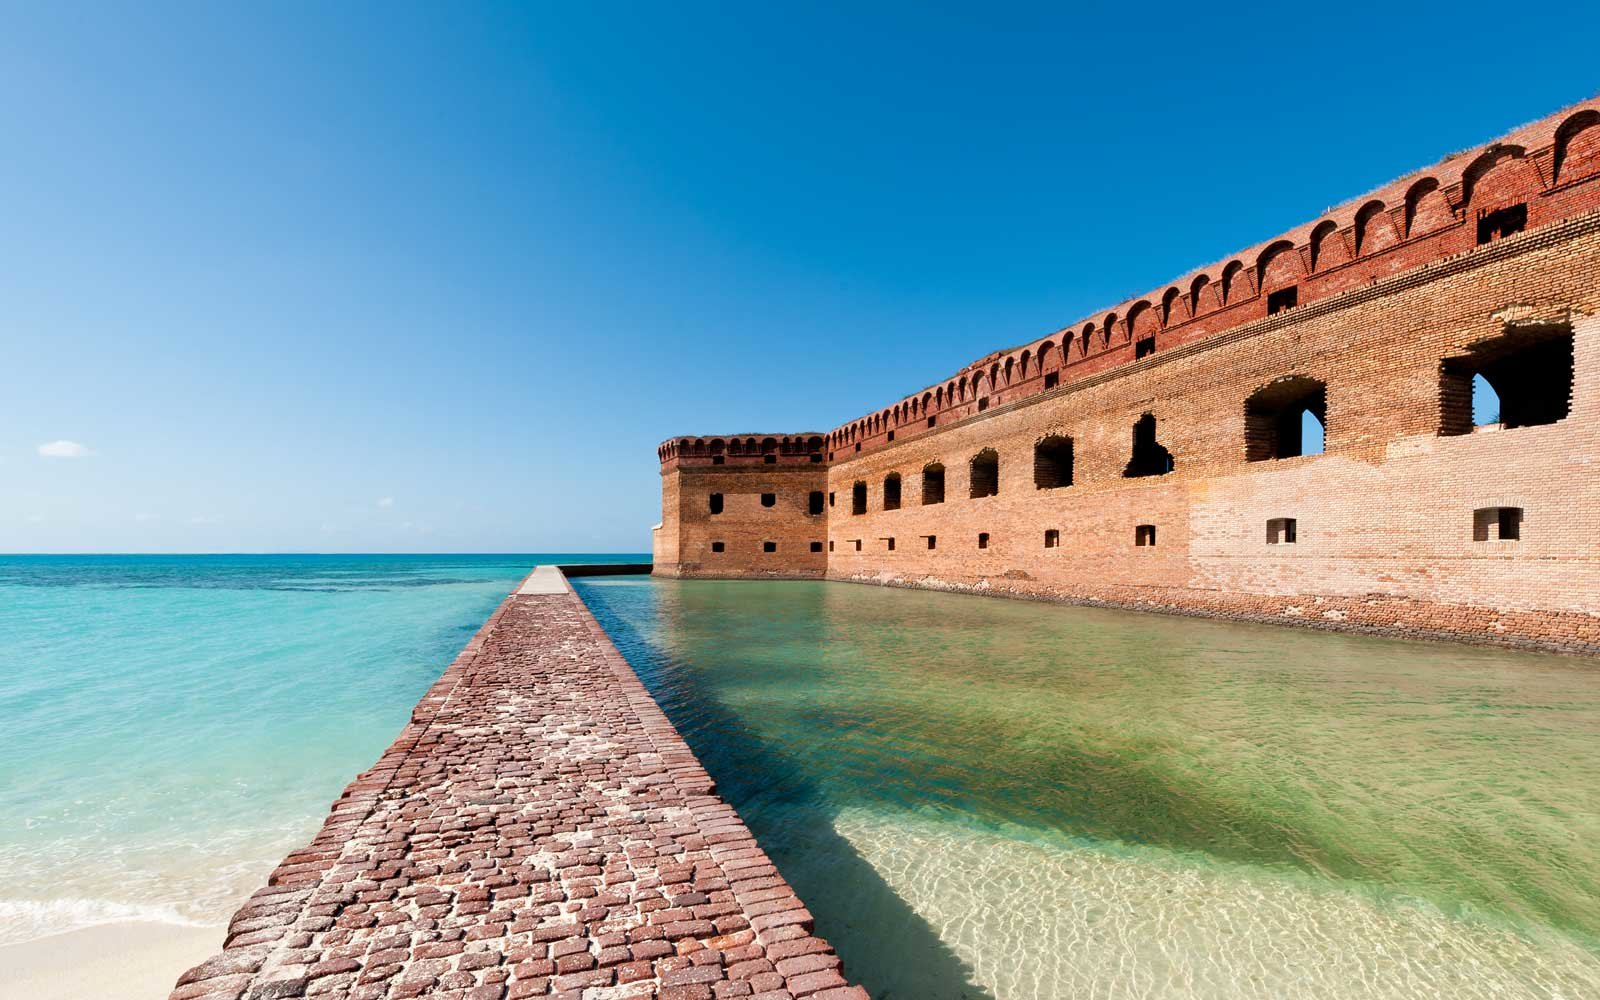 Dry Tortugas National Park is known for its clear blue waters, marine life, and historic structures like Fort Jefferson.